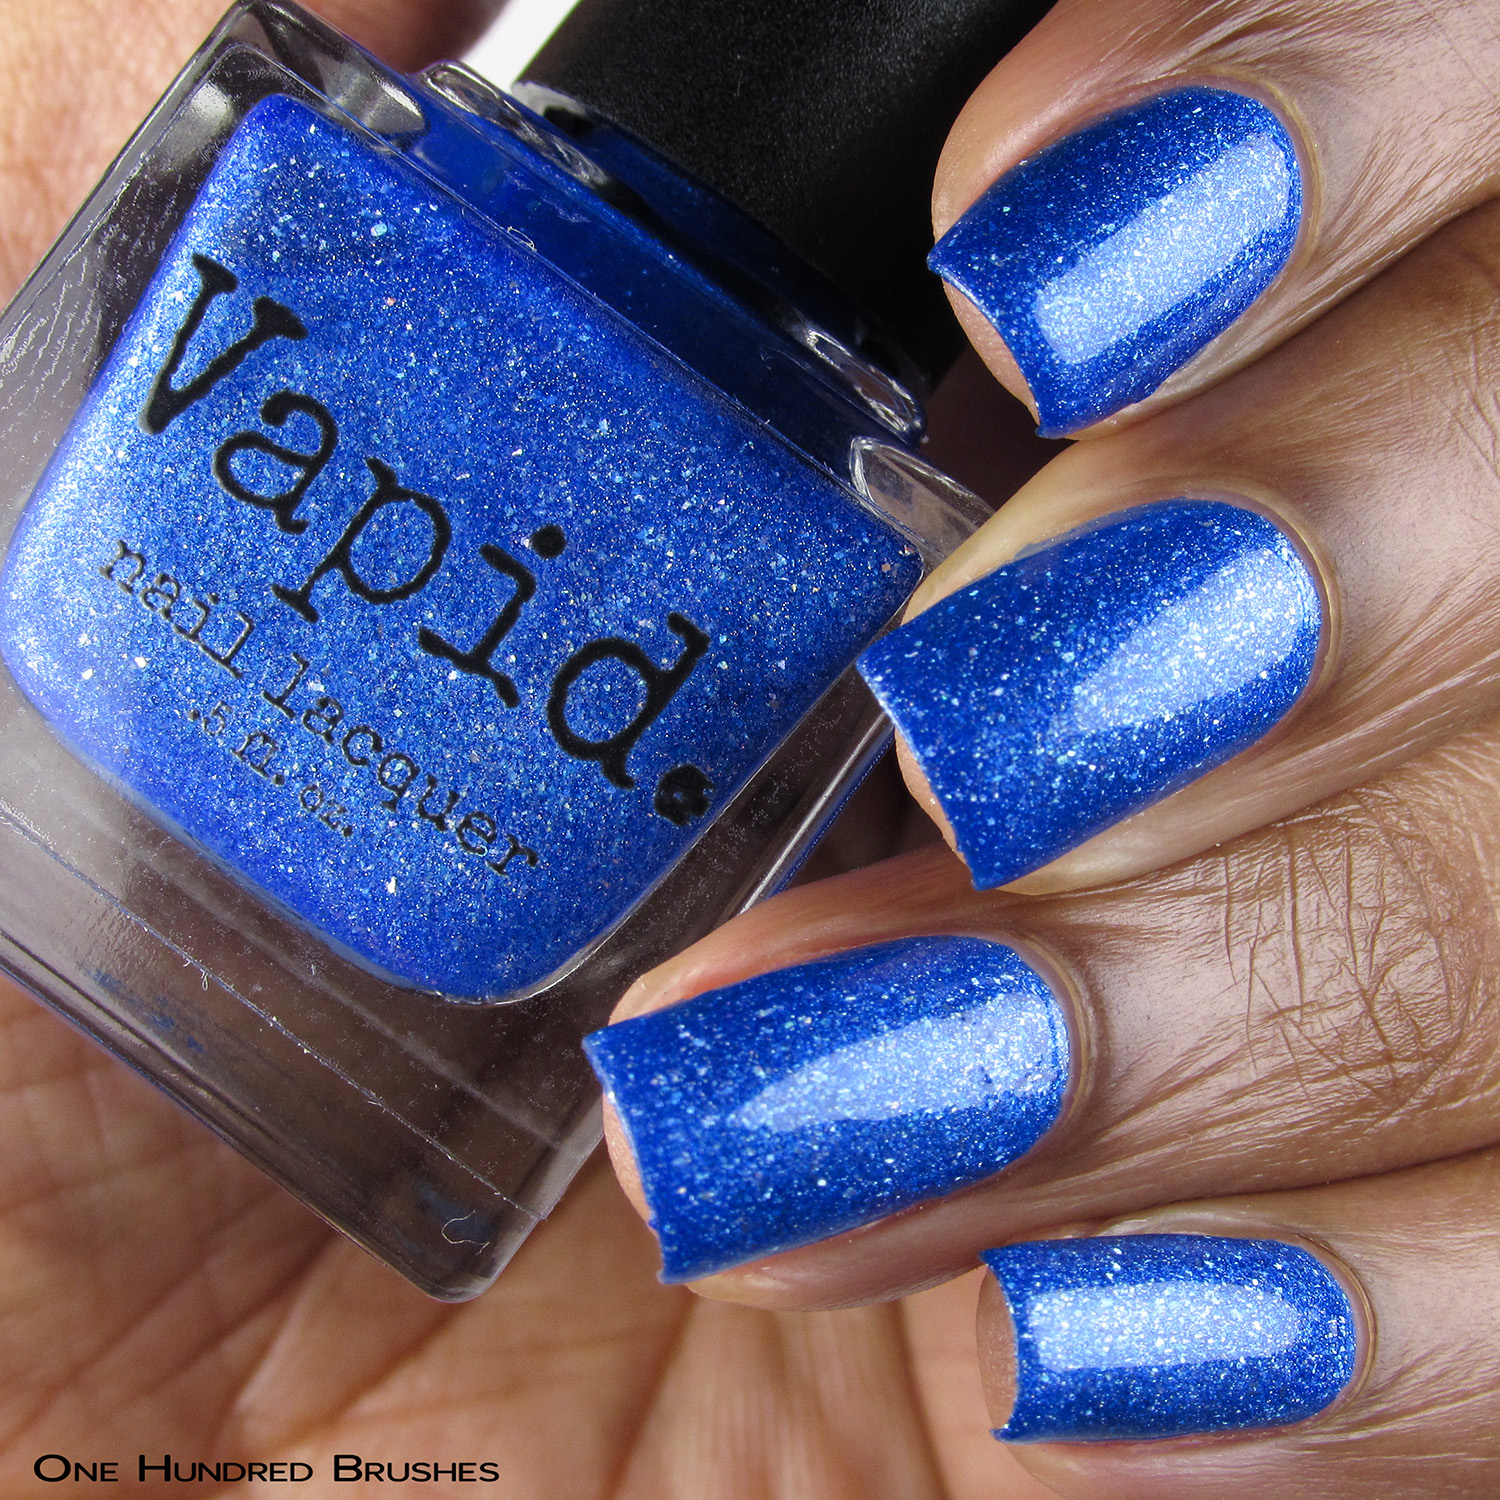 Blue Moon - Vapid Lacquer August 2019